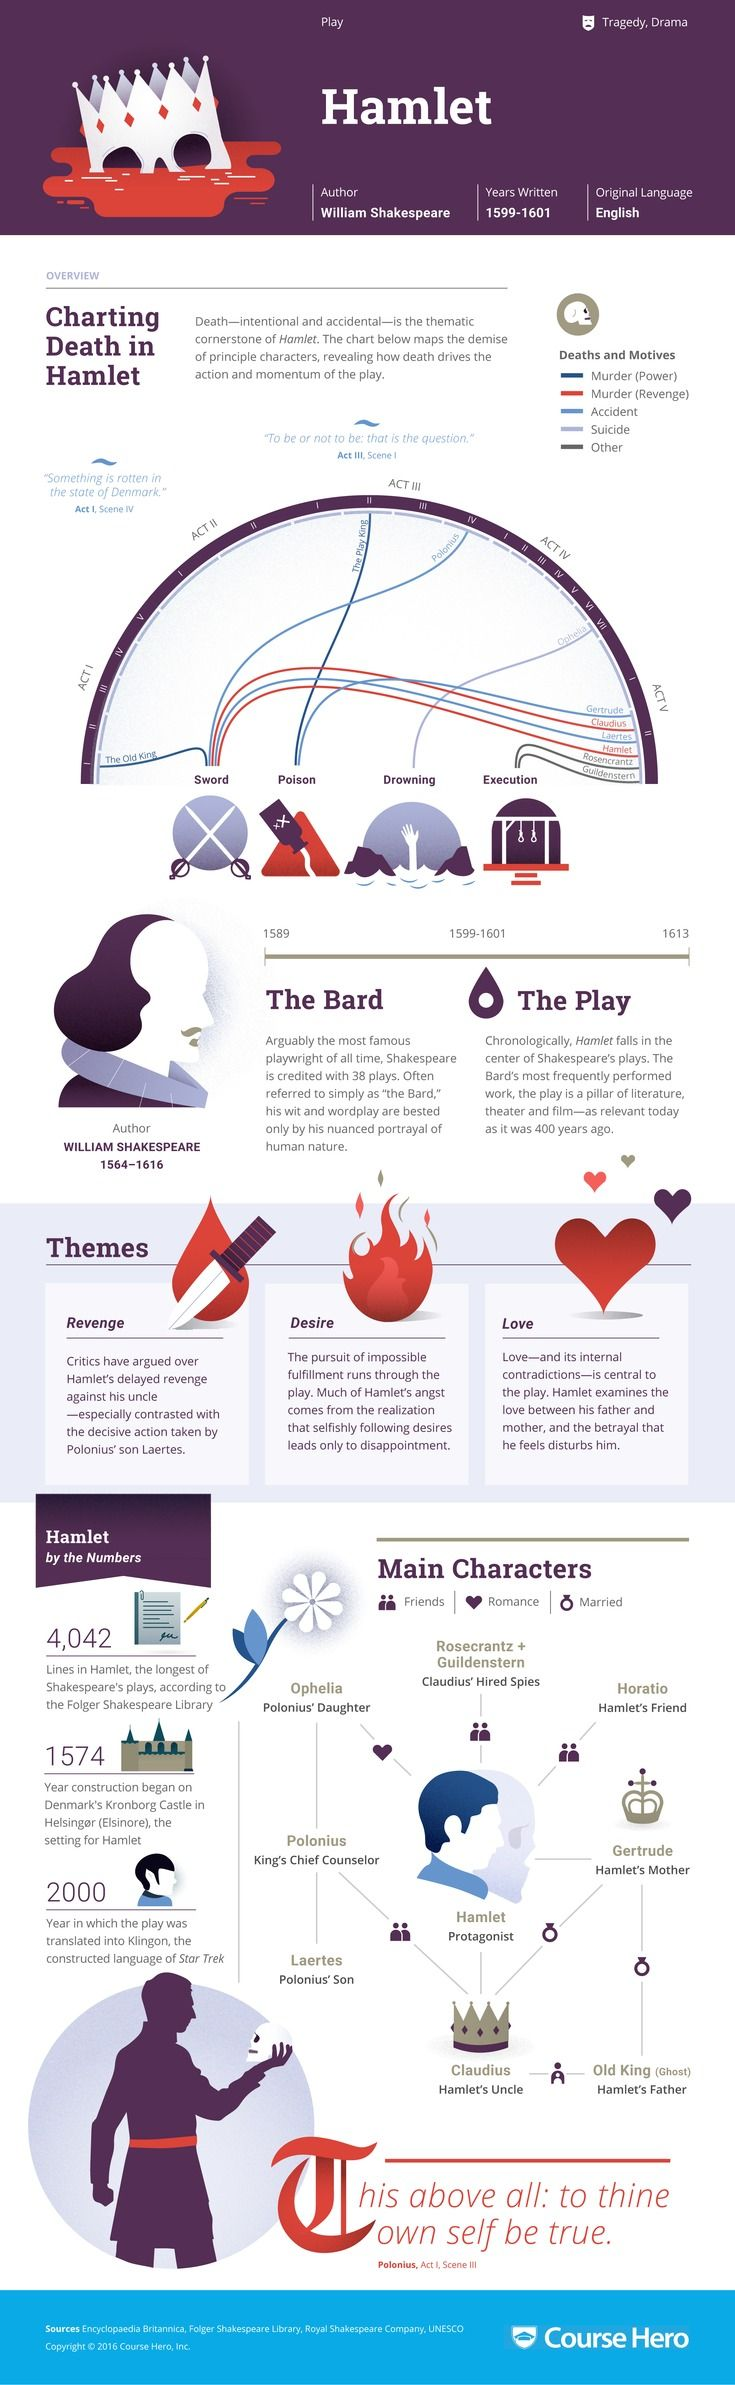 'Hamlet' infographic from Course Hero.